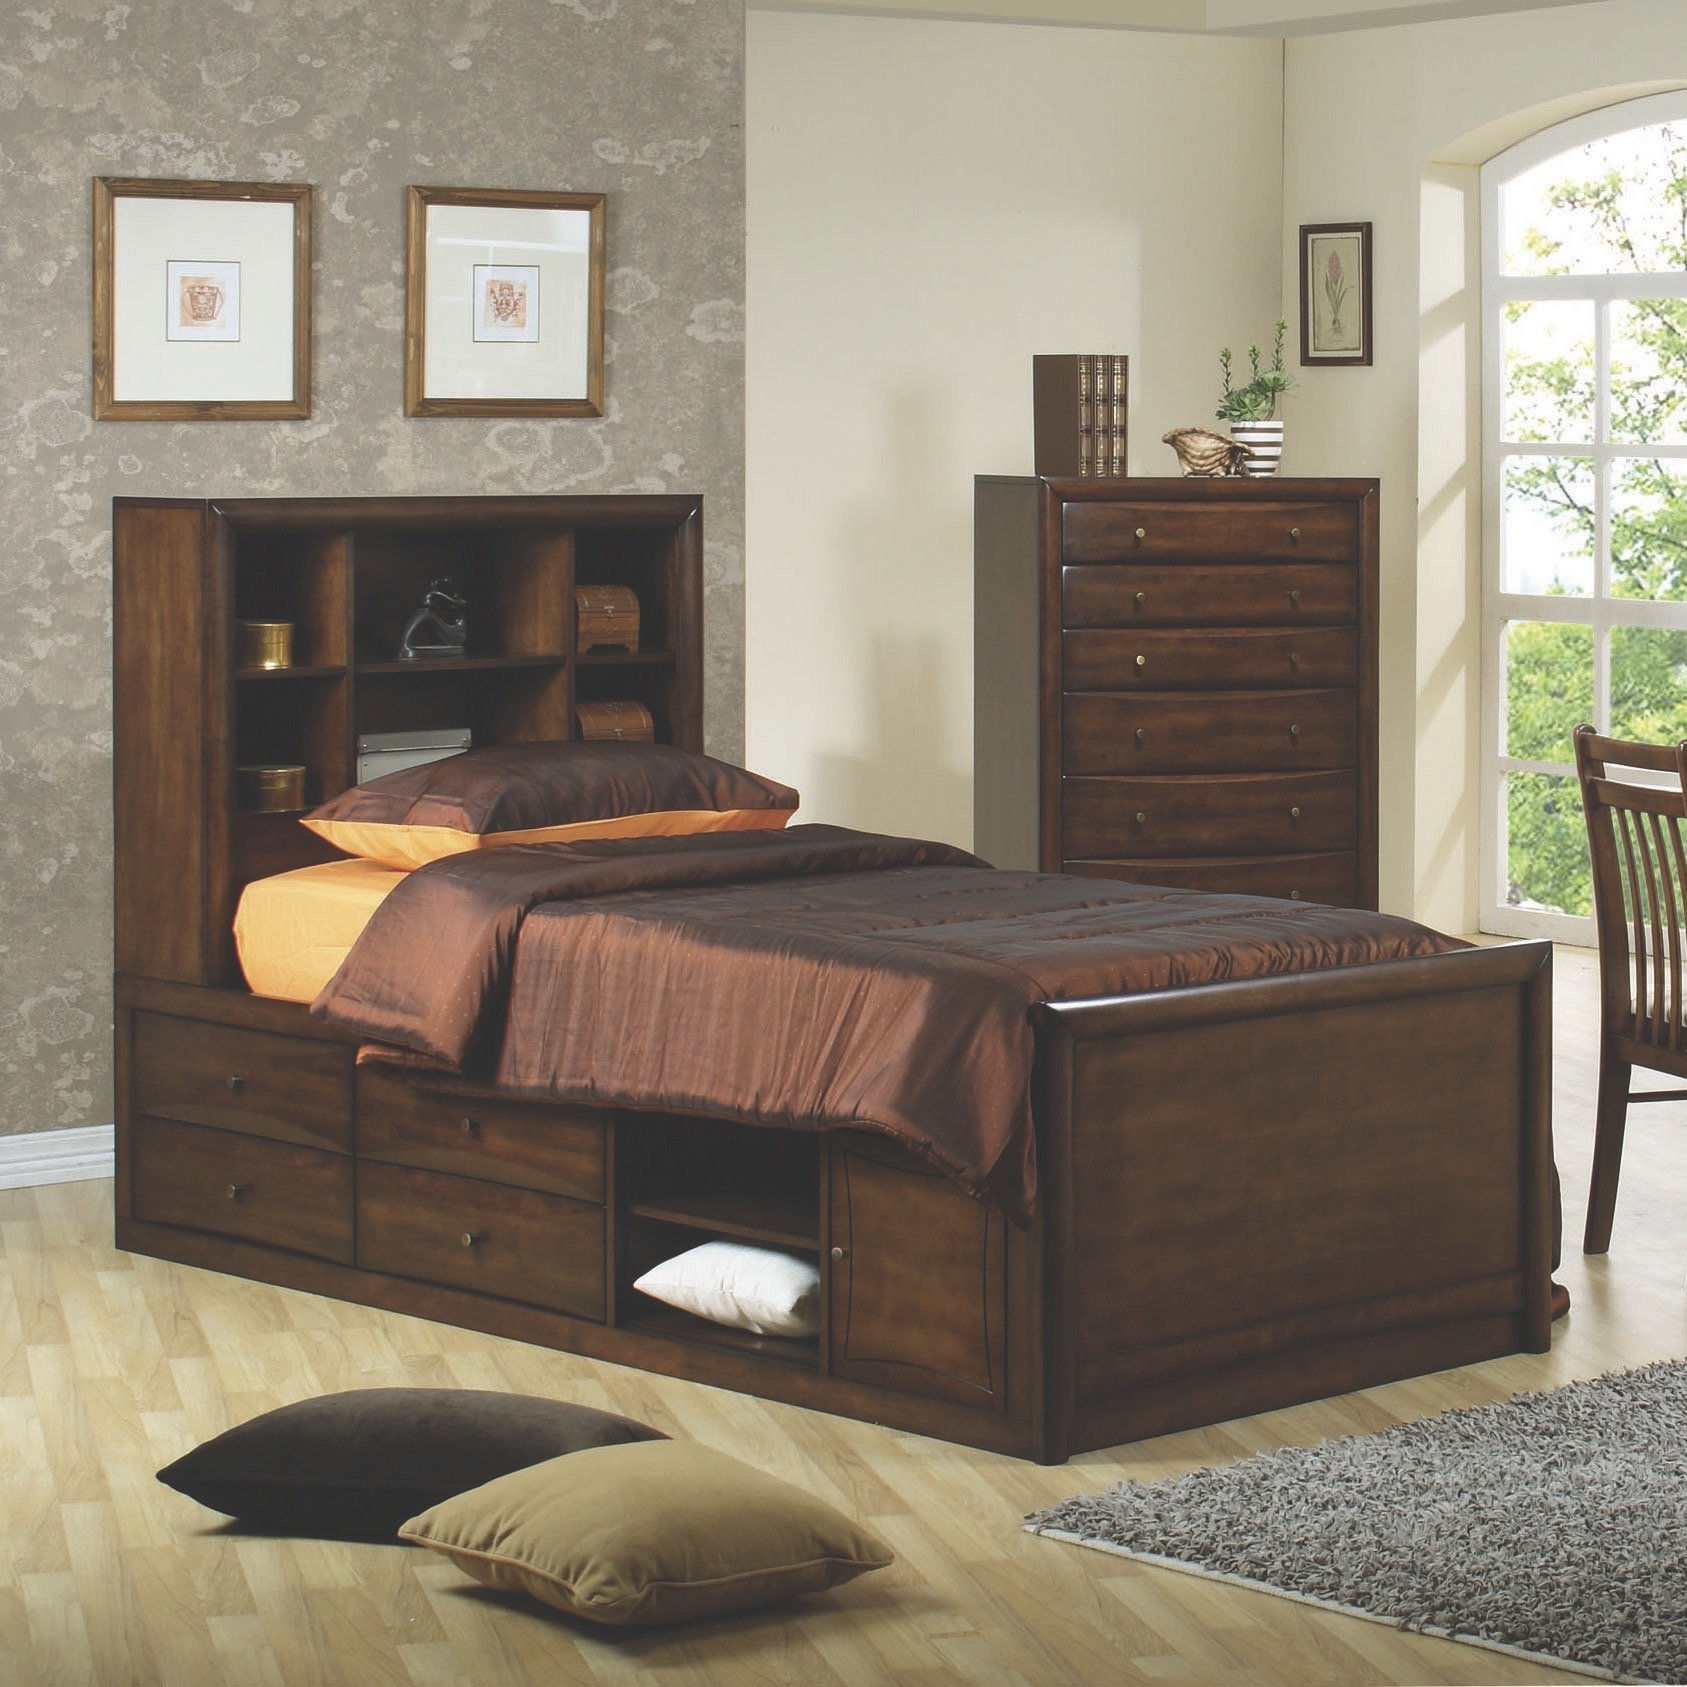 Coaster Home Furnishings 400280T Transitional Bed, Twin, Walnut